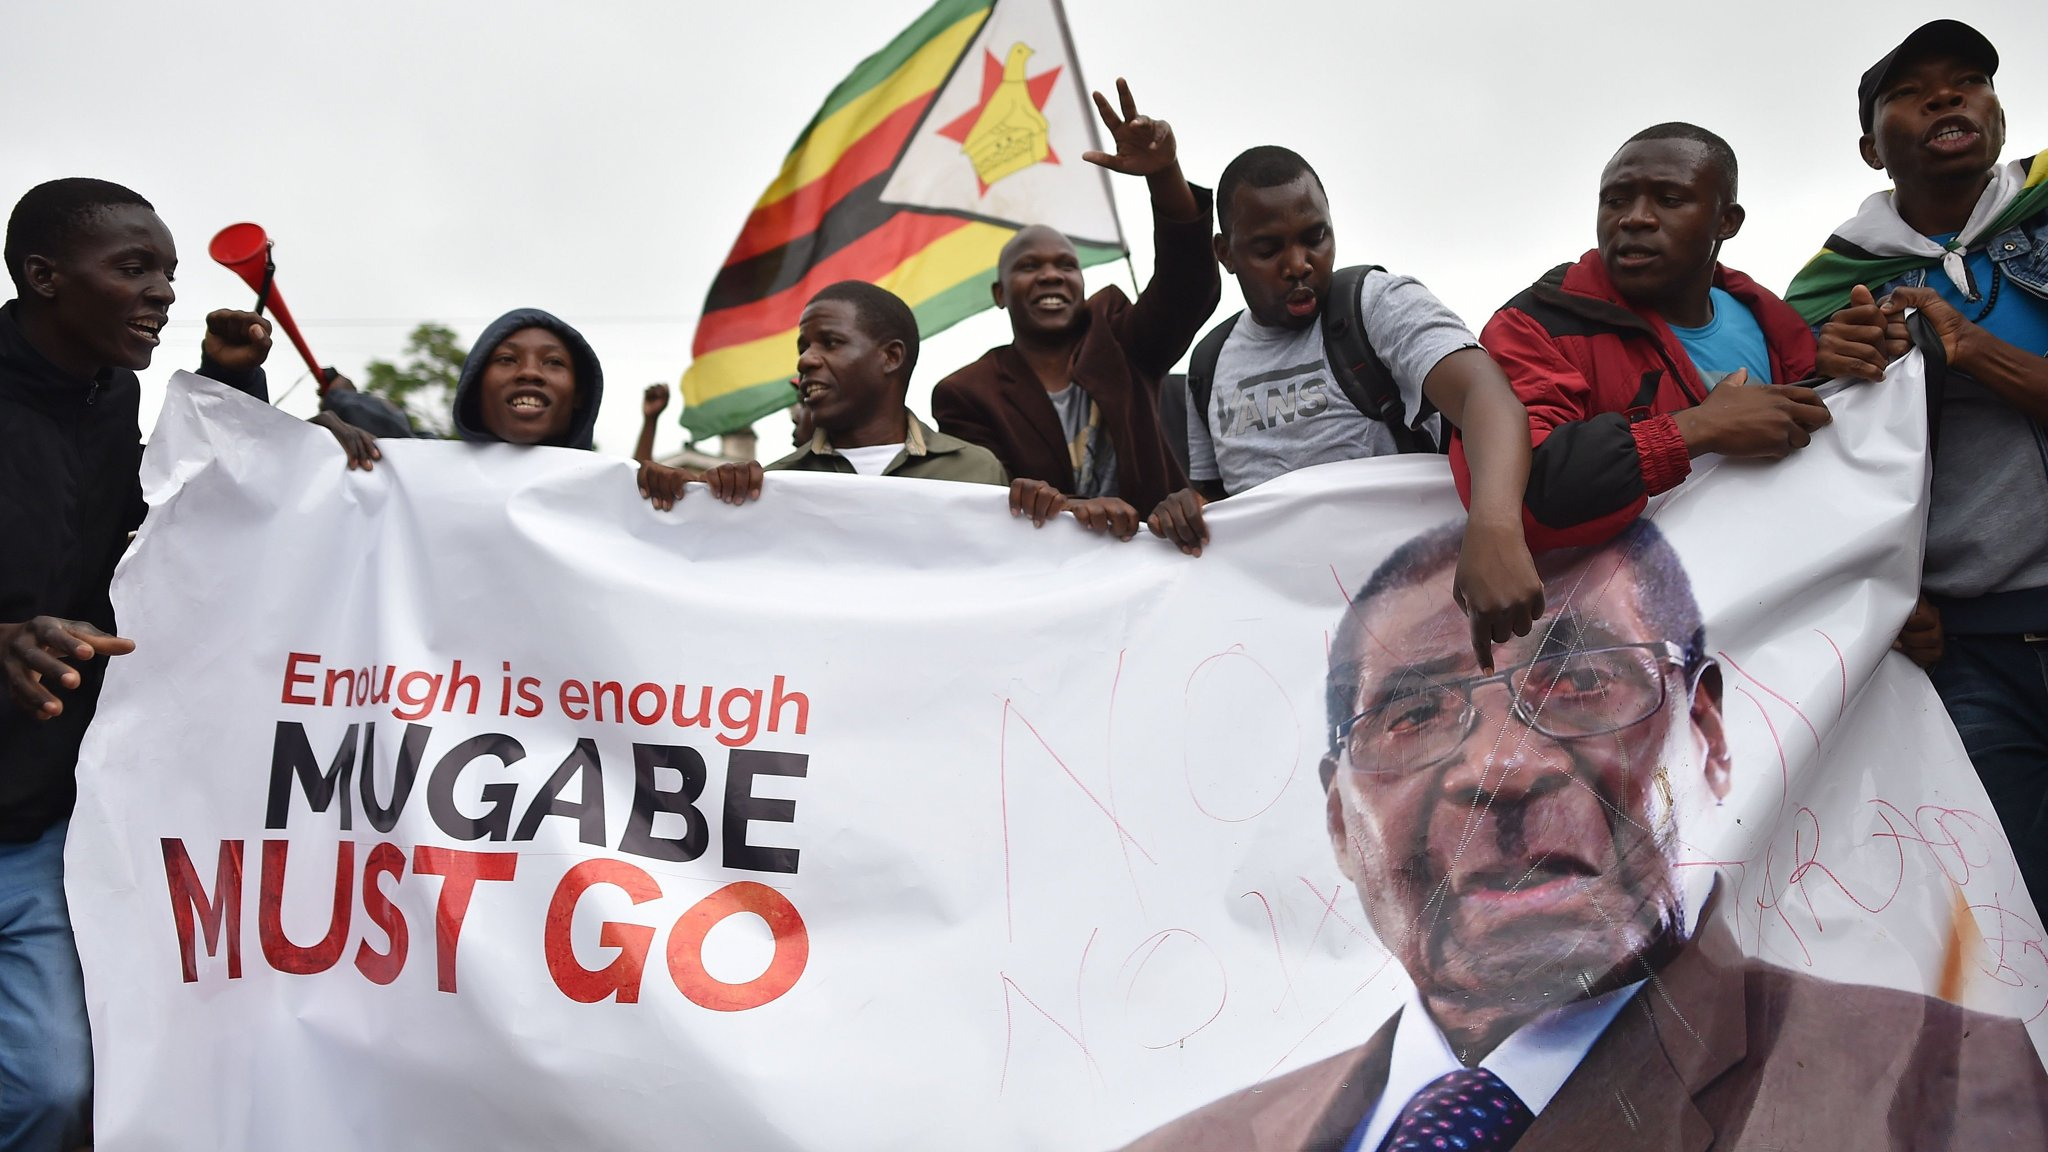 Tens of thousands gather in Harare for anti-Mugabe rally